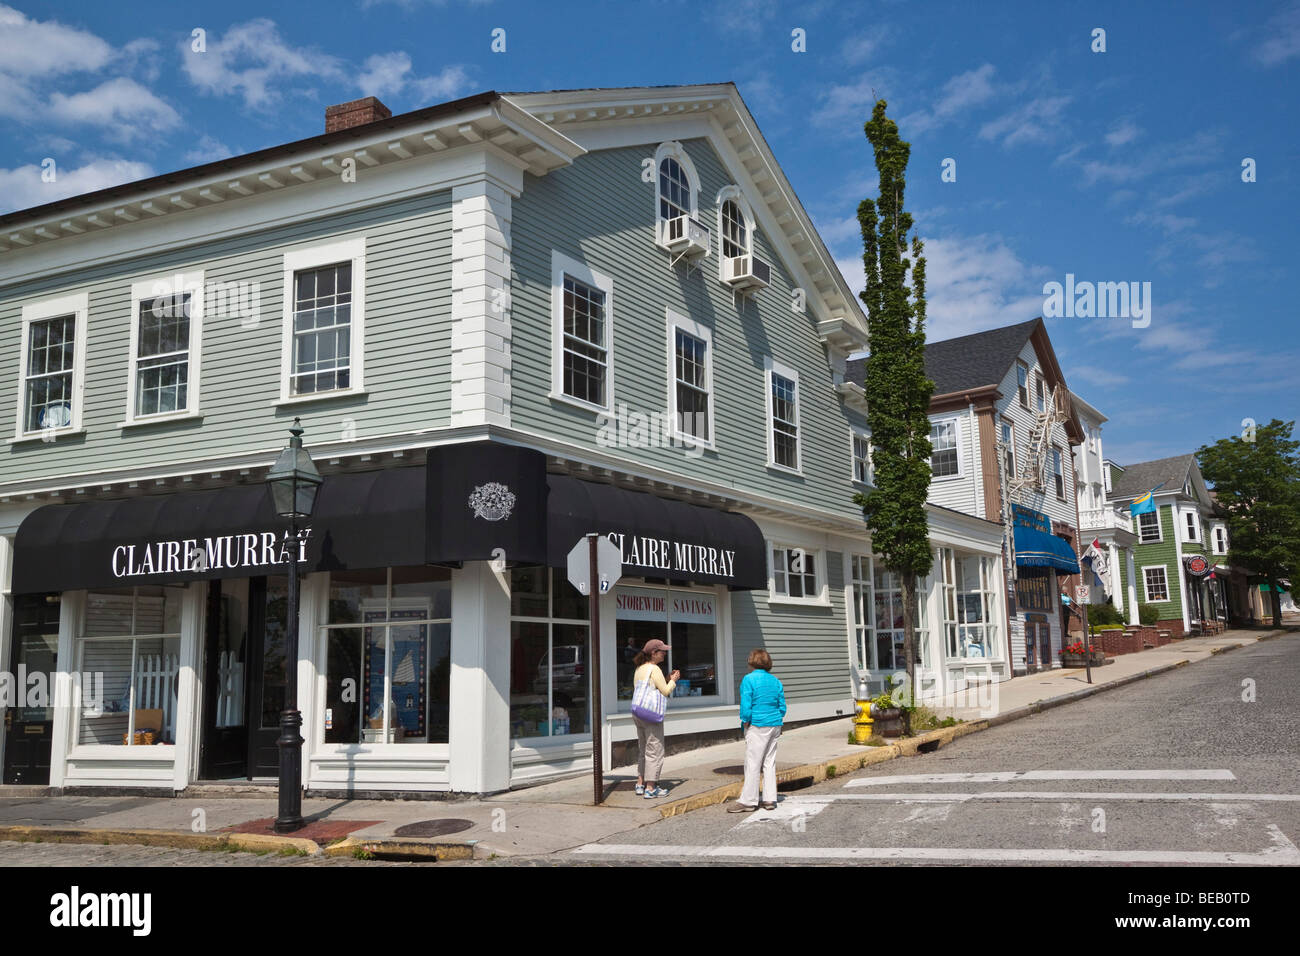 shopping street in newport rhode stock photos shopping street in newport rhode stock images. Black Bedroom Furniture Sets. Home Design Ideas